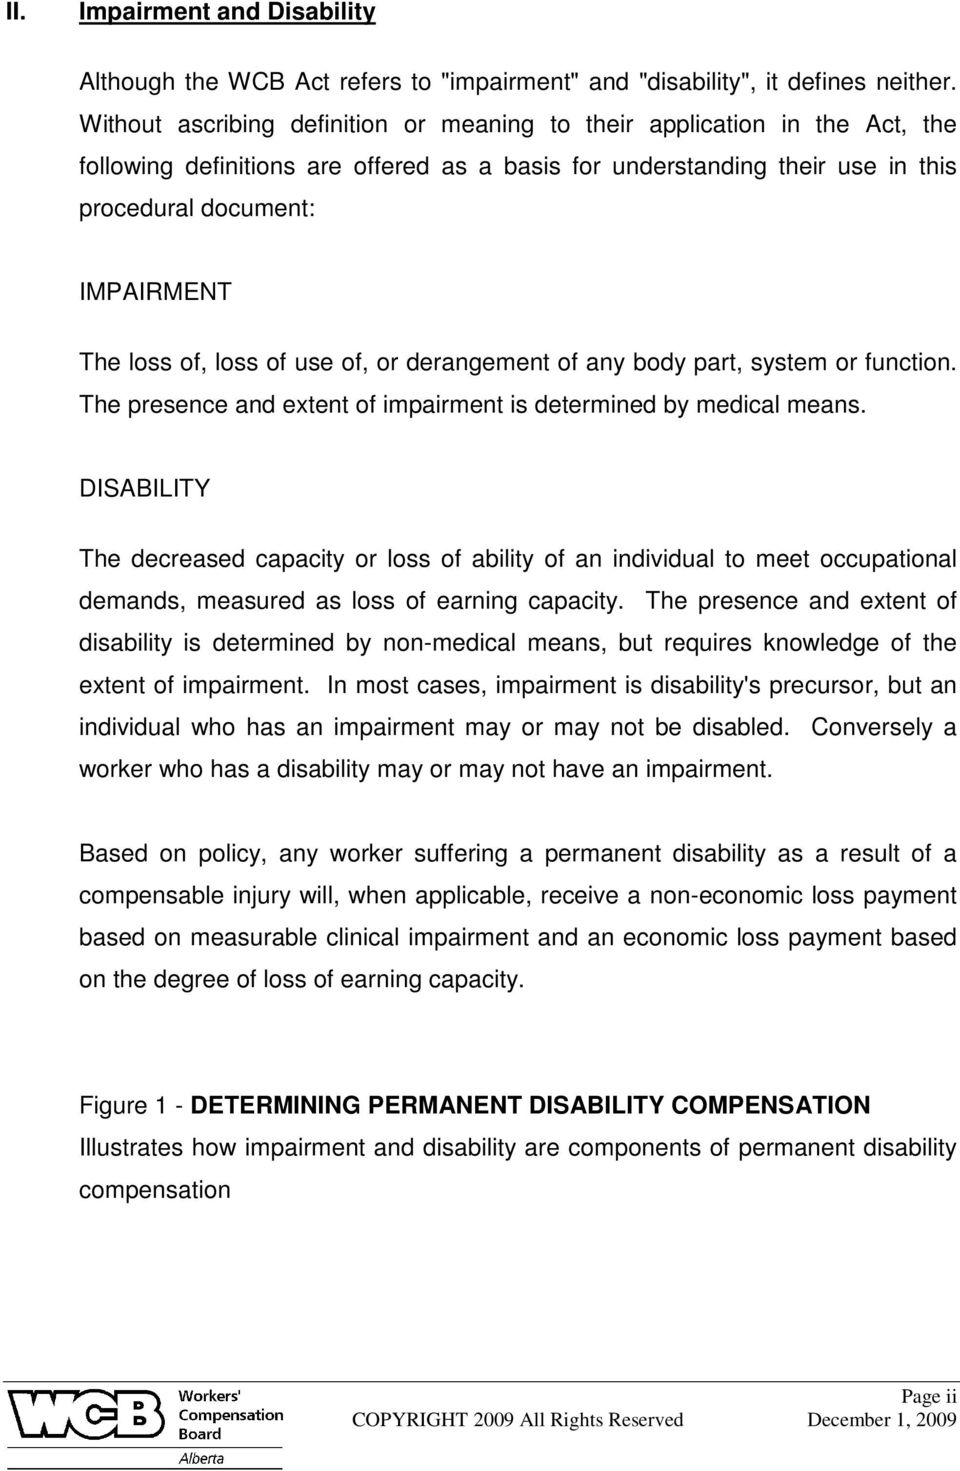 of, loss of use of, or derangement of any body part, system or function. The presence and extent of impairment is determined by medical means.